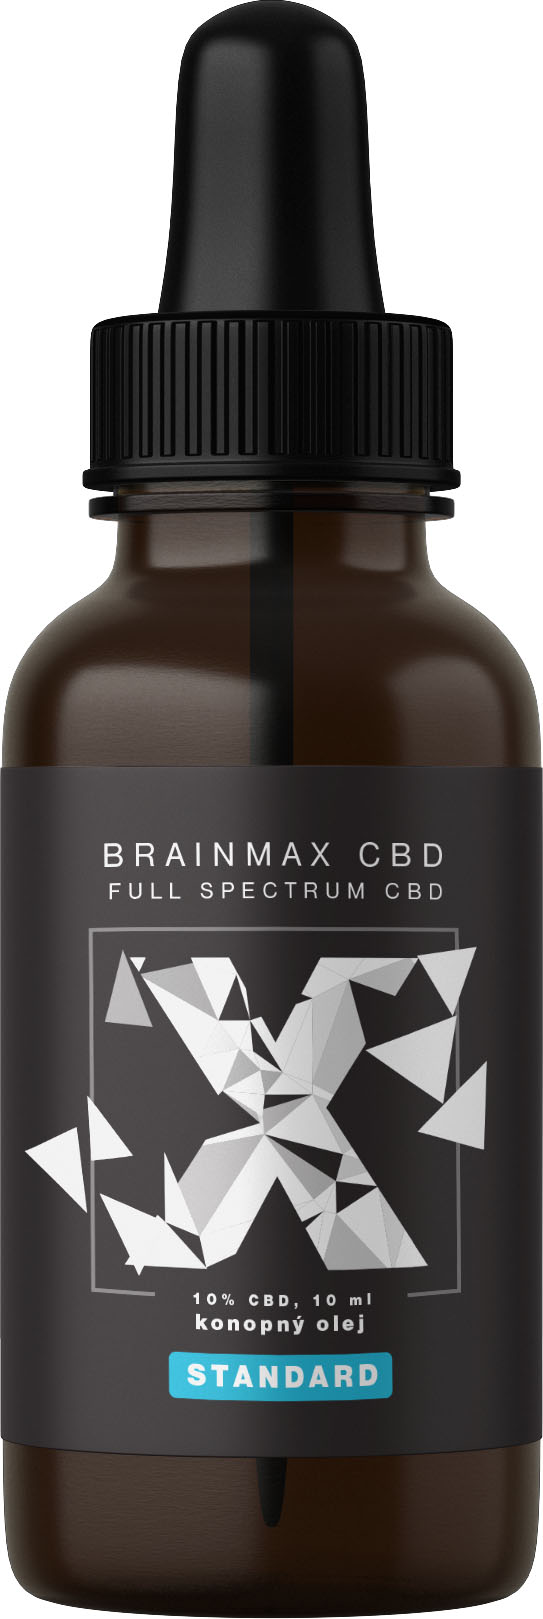 BrainMax CBD STANDARD, 10%, 10 ml